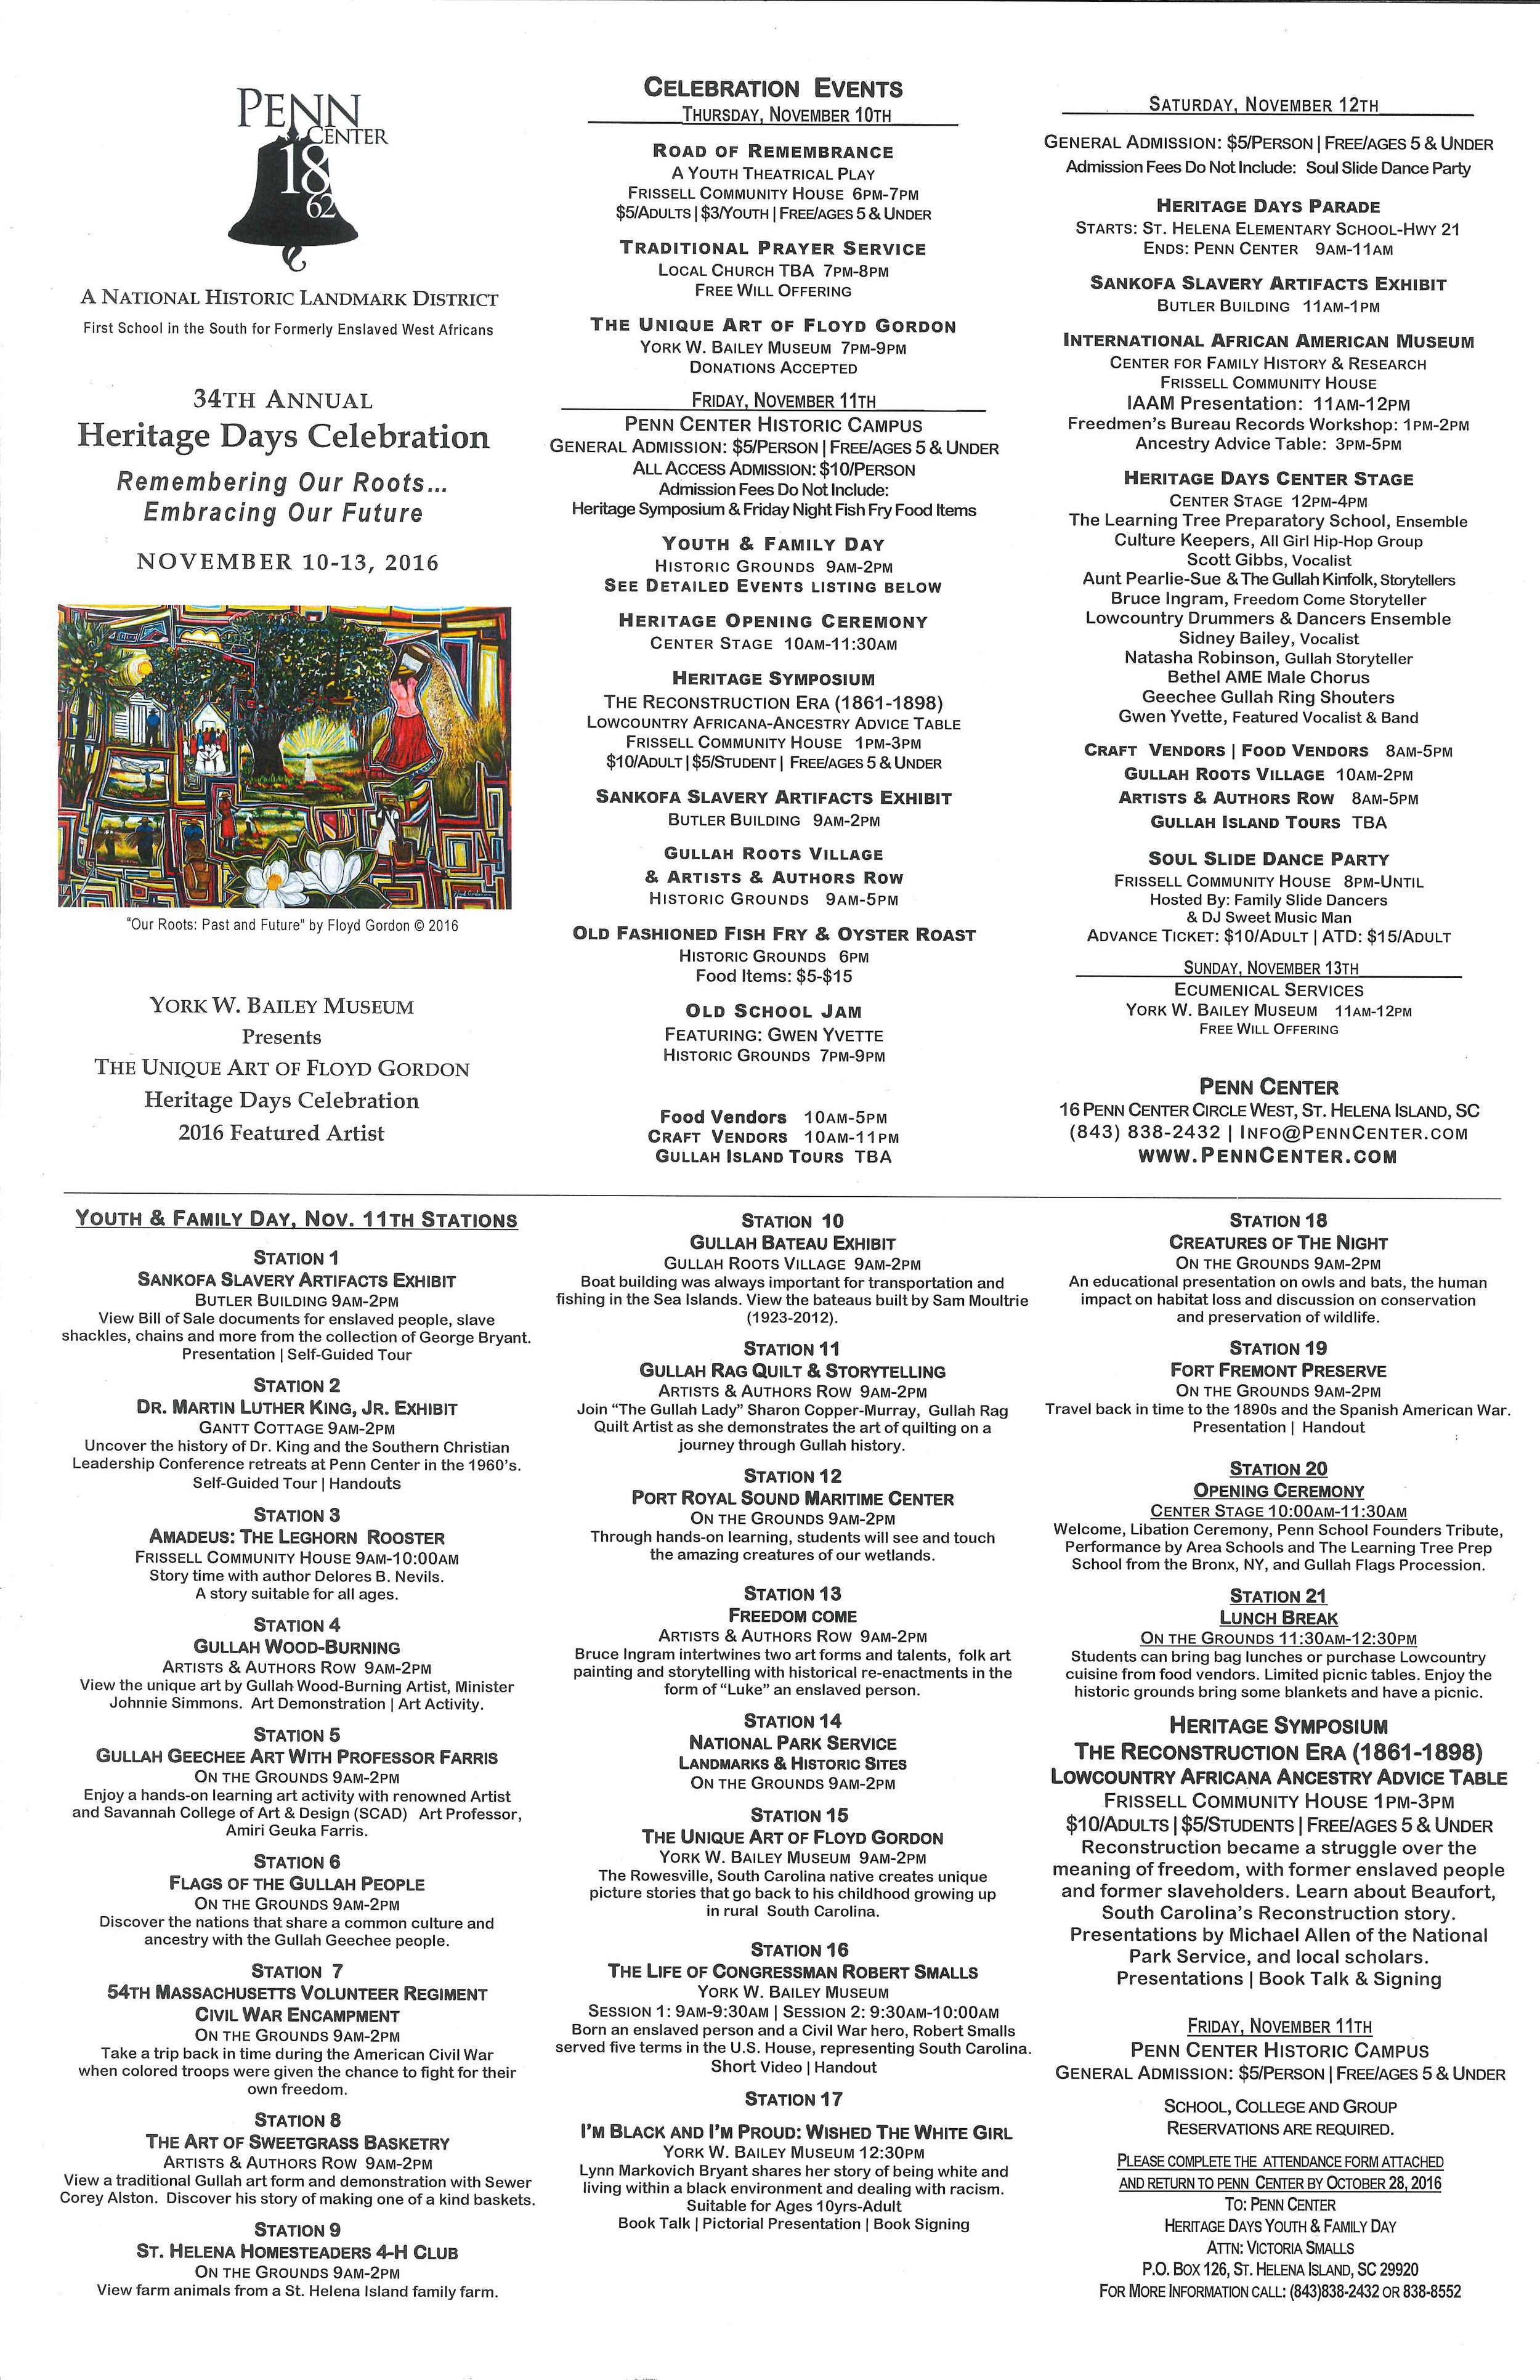 2016 Heritage Days Celebration Events/Times/Costs